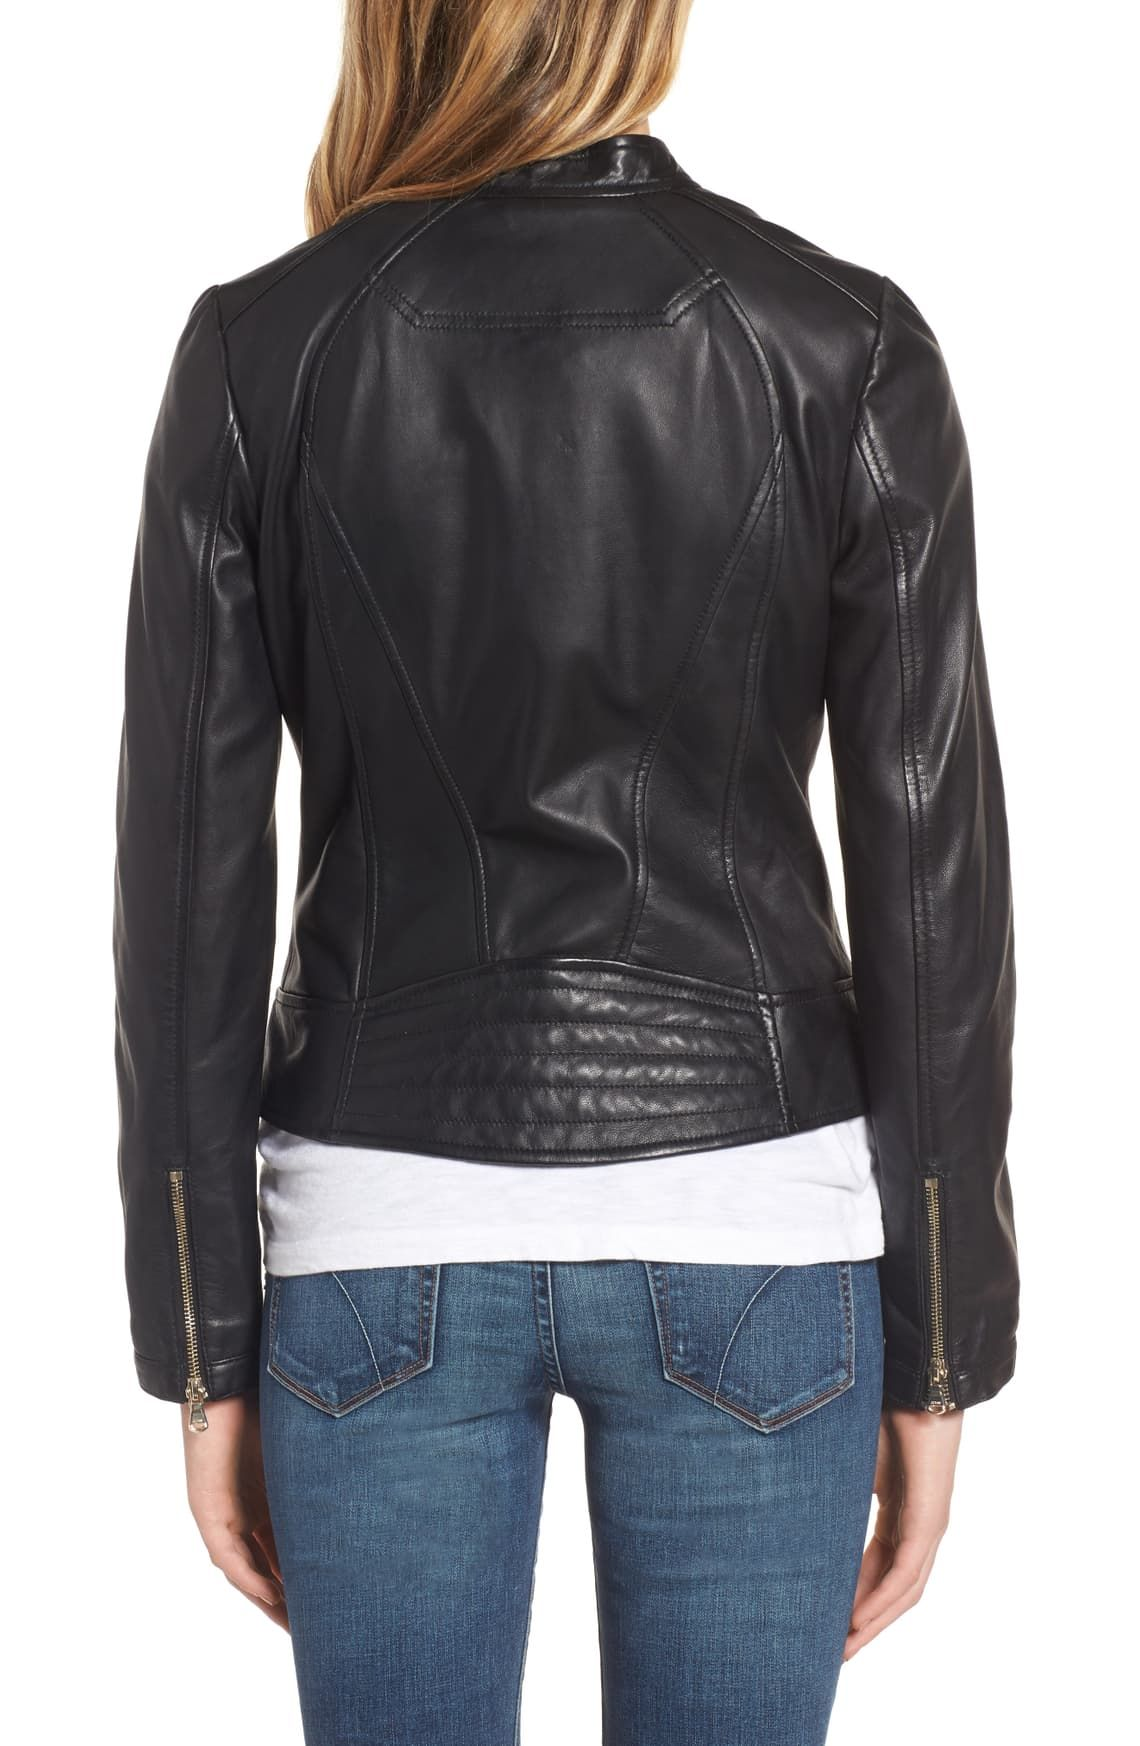 Guess Collarless Leather Moto Jacket Nordstrom Leather Moto Jacket Jackets Collarless [ 1746 x 1140 Pixel ]